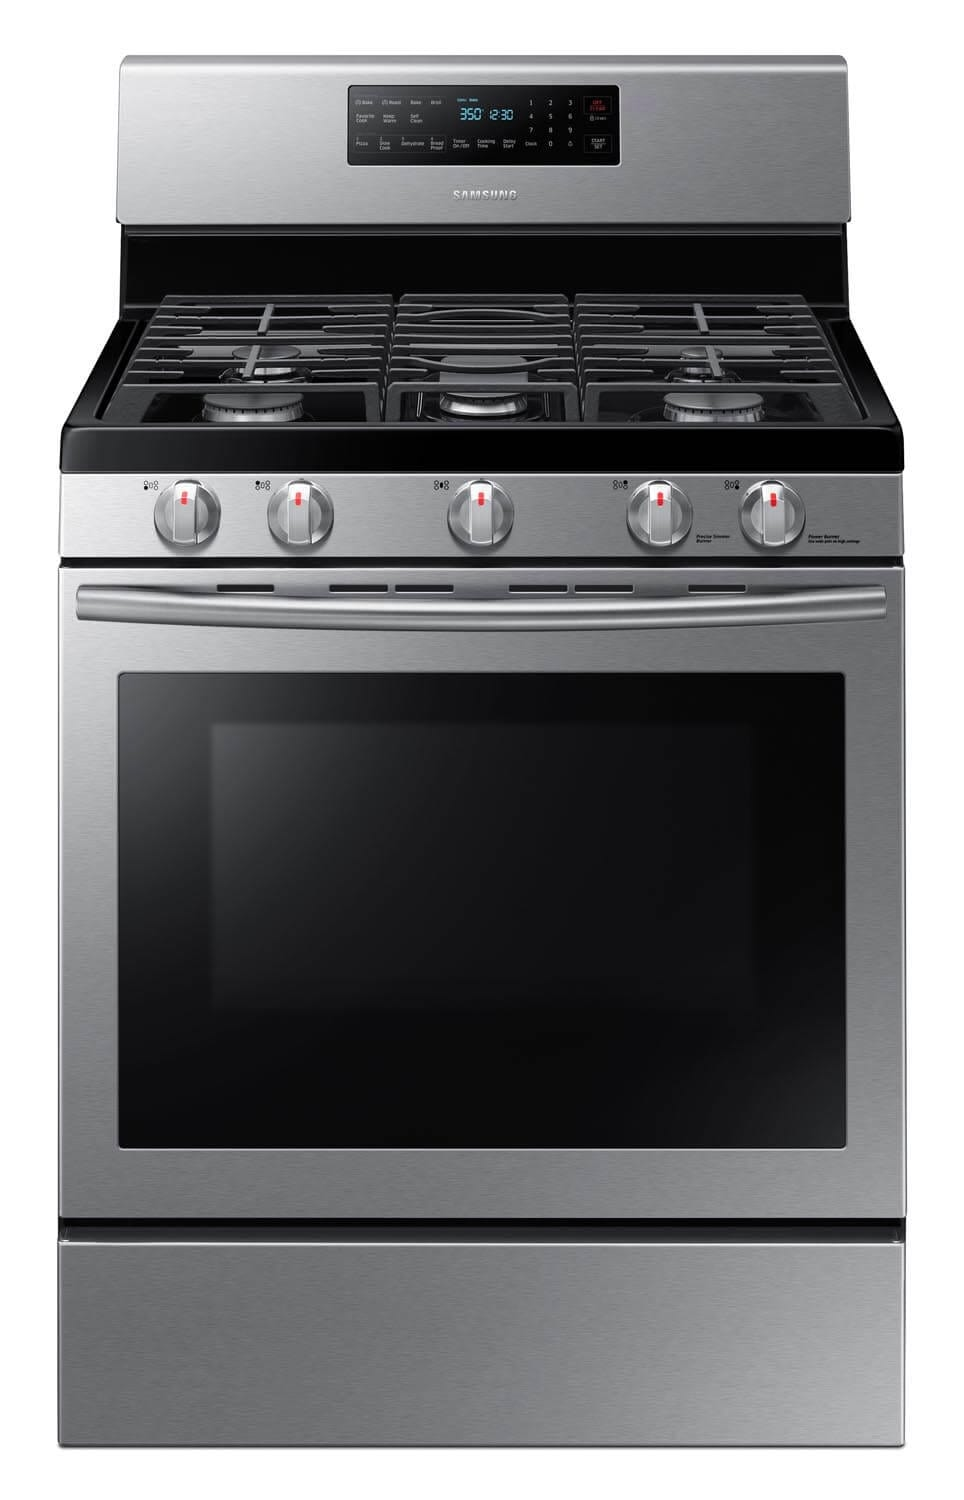 Samsung Stainless Steel Freestanding Gas Range (5.8 Cu. Ft.) - NX58H5600SS